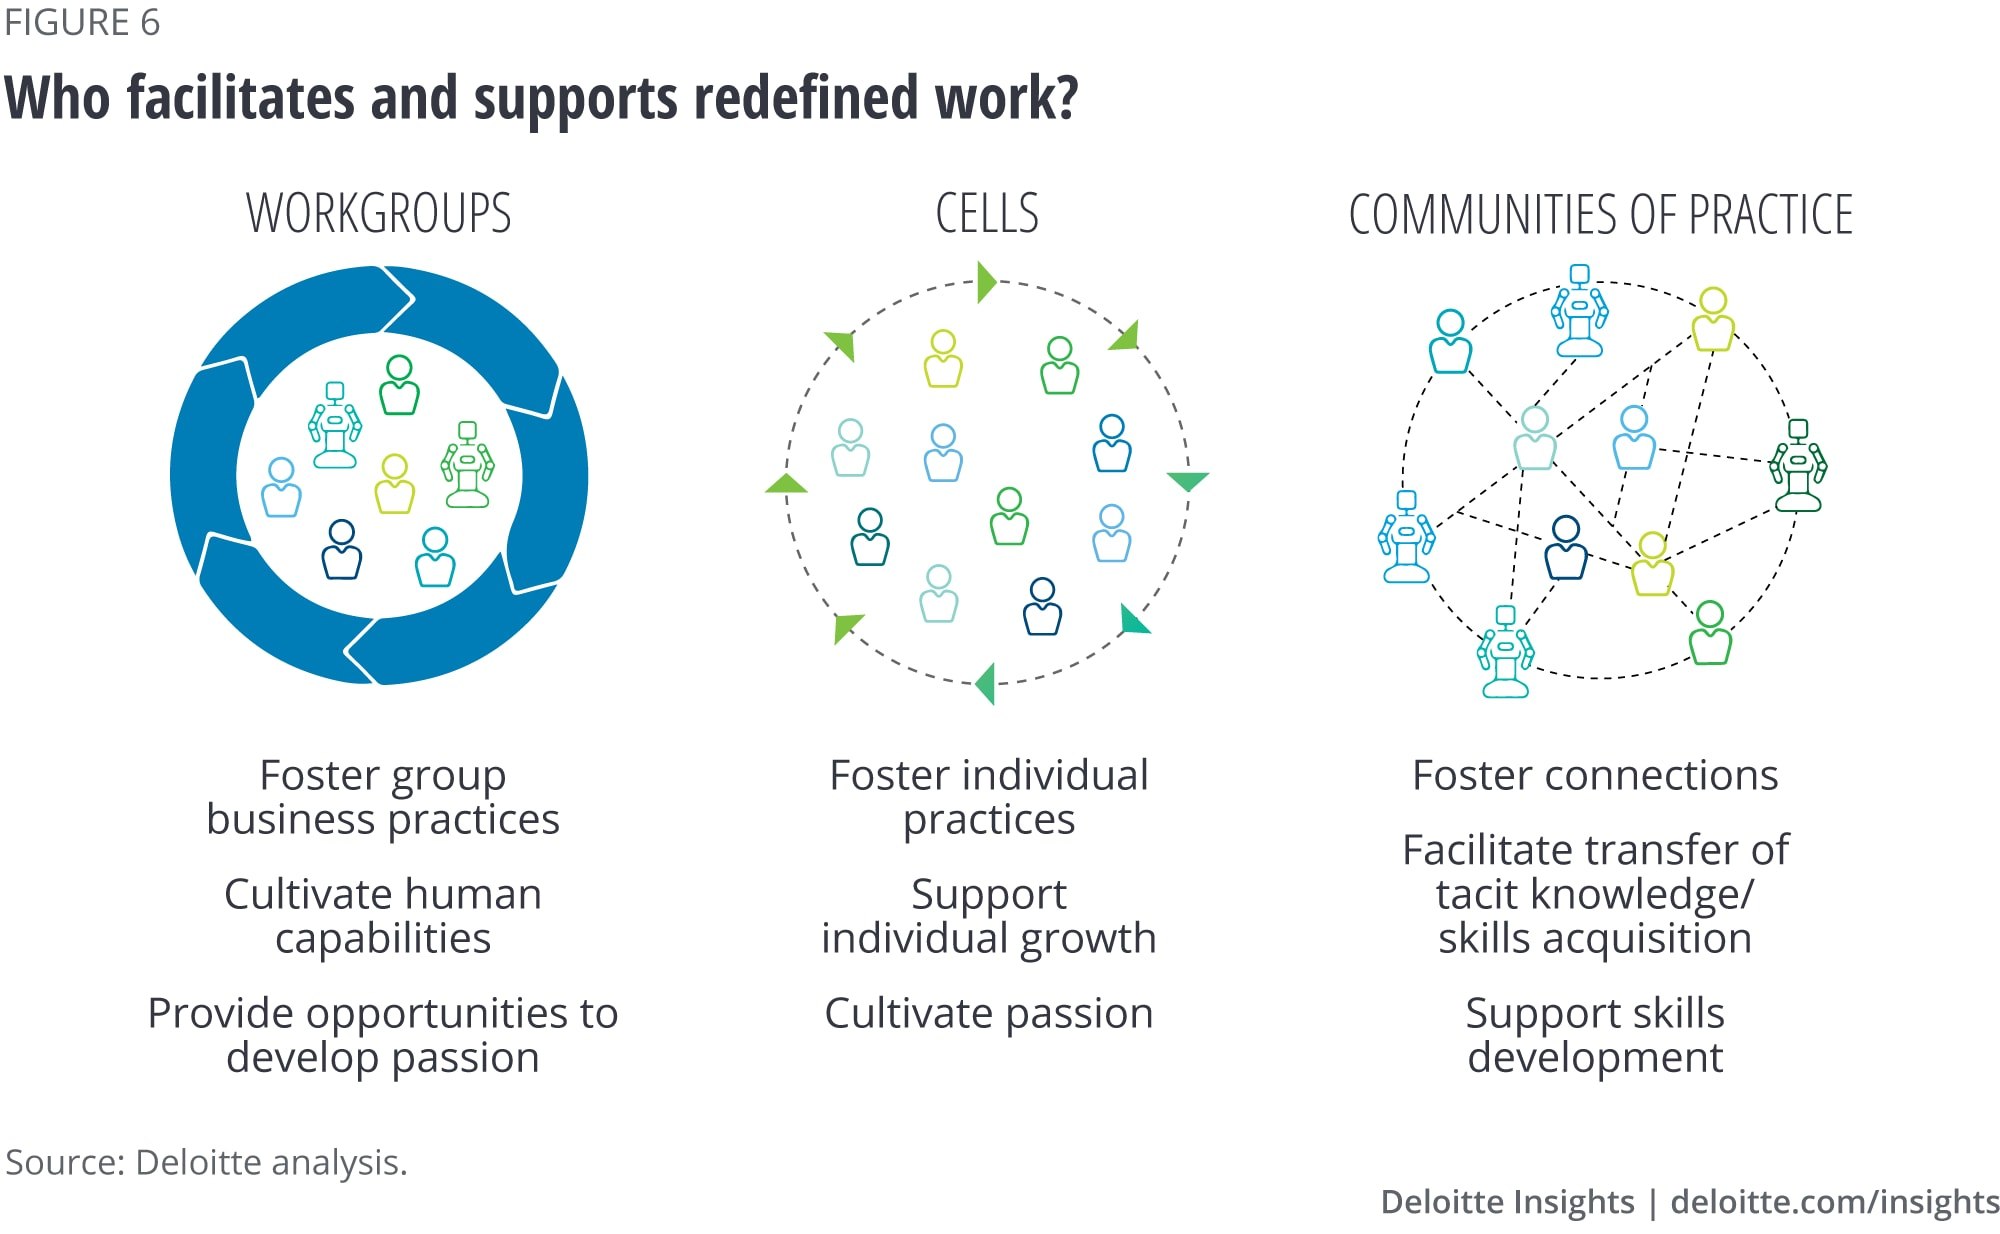 Who facilitates and supports redefined work?